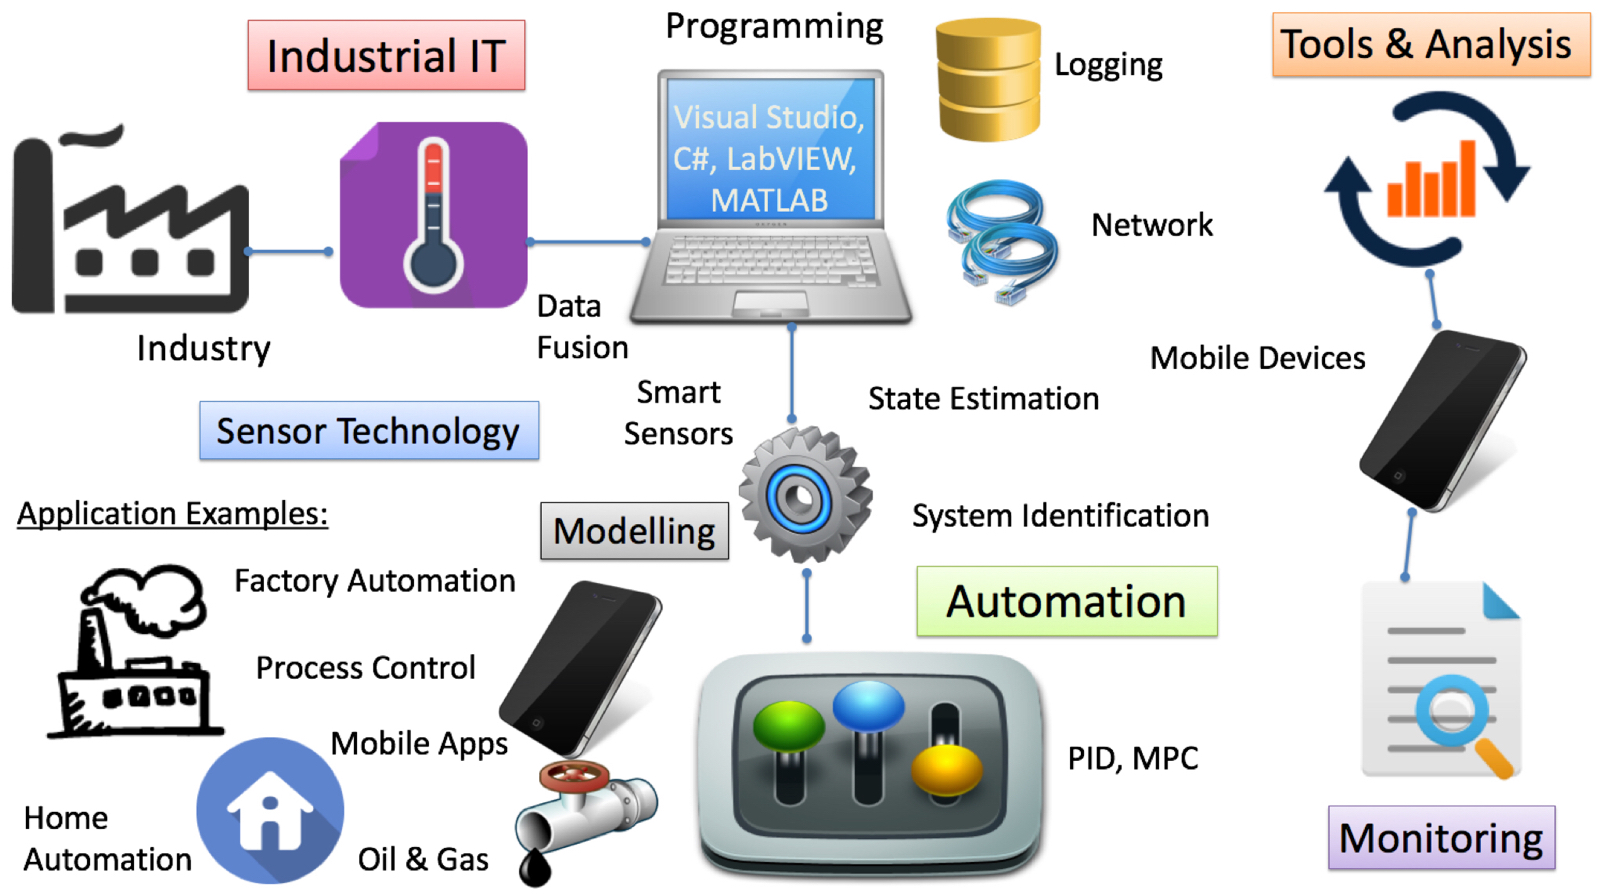 Industrial IT and Automation